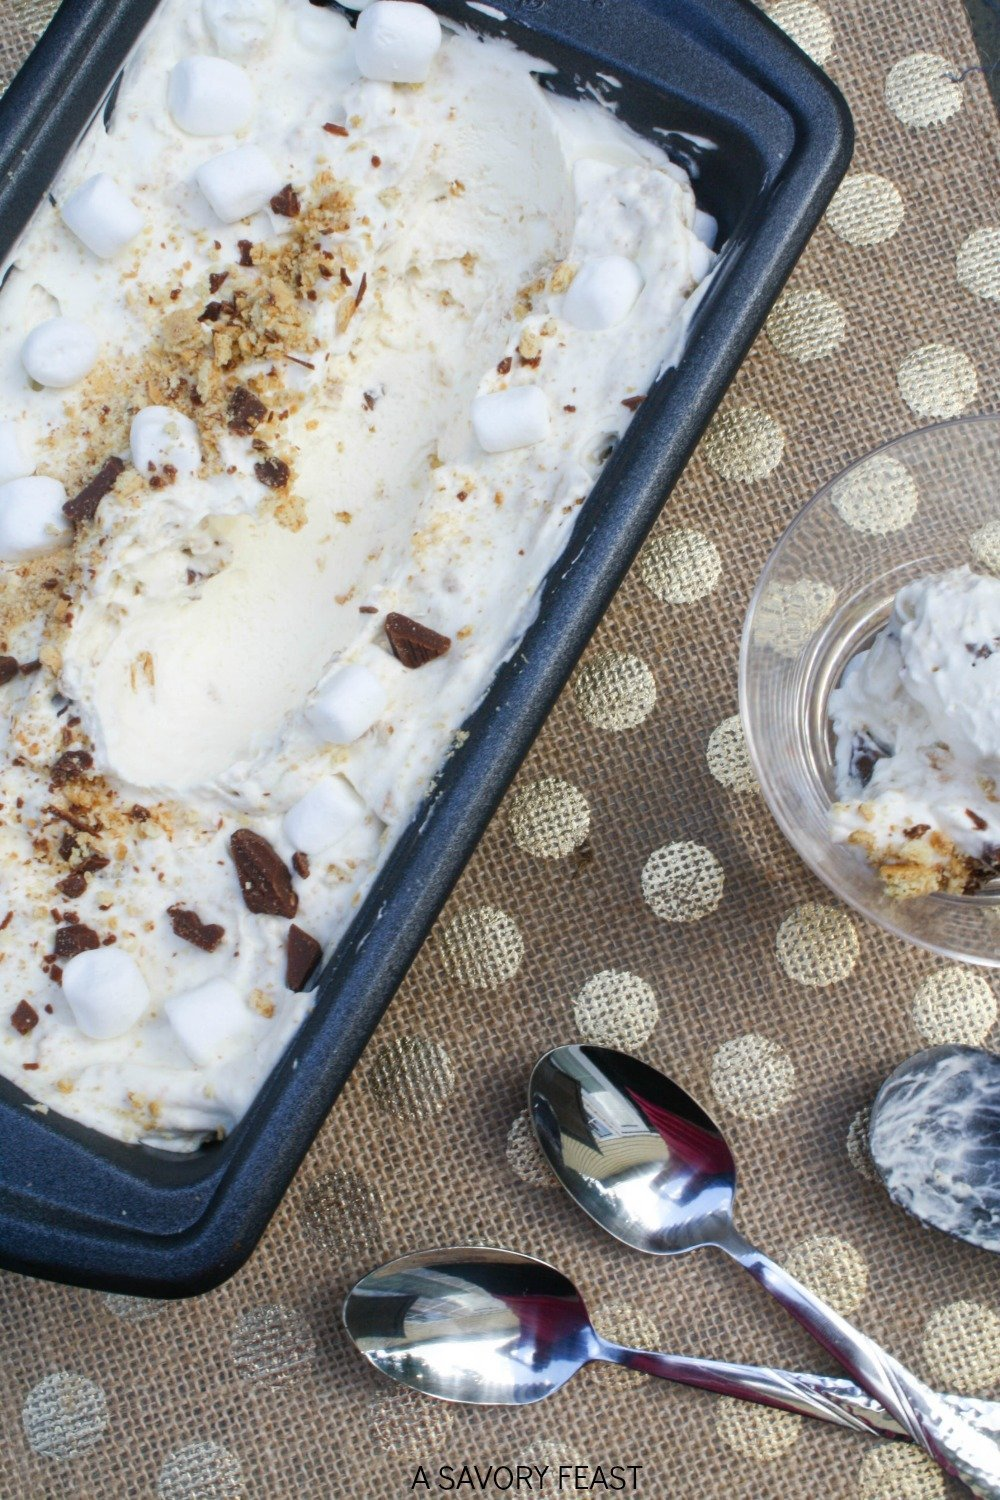 What do you do when the weather gets too warm for a bonfire? Make S'mores Ice Cream of course! This no churn recipe makes it easy to make ice cream at home without a machine.